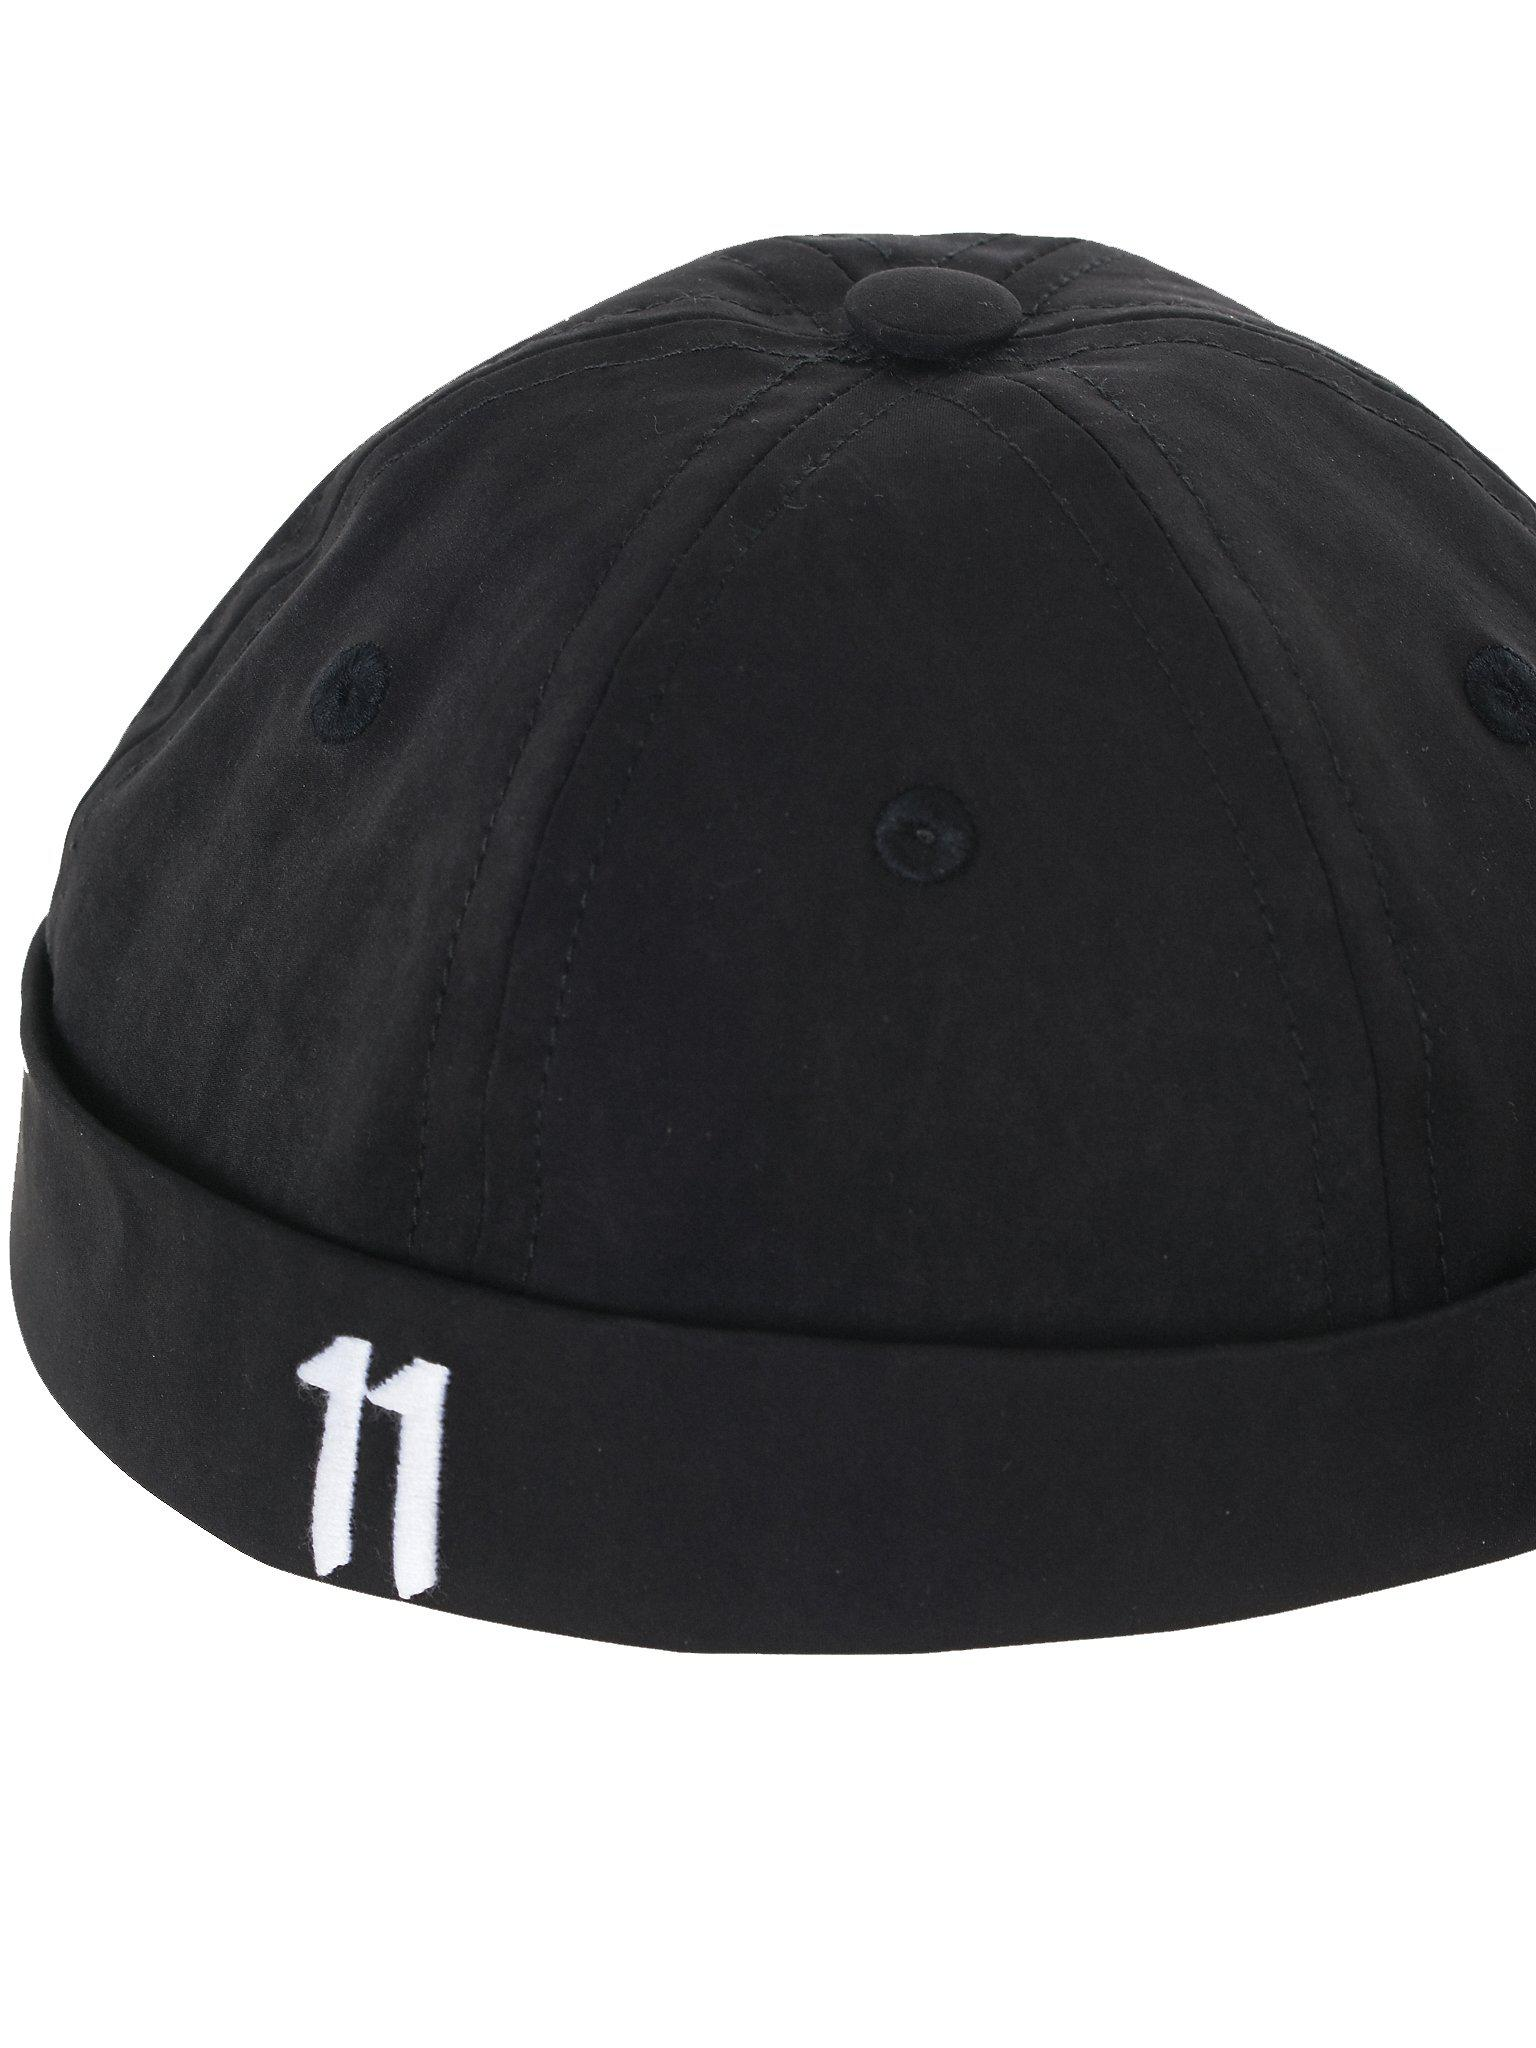 5ec3cbbb39fe6 ... greece lyst boris bidjan saberi 11 embroidered brimless cap in black  for men 1c3d5 74774